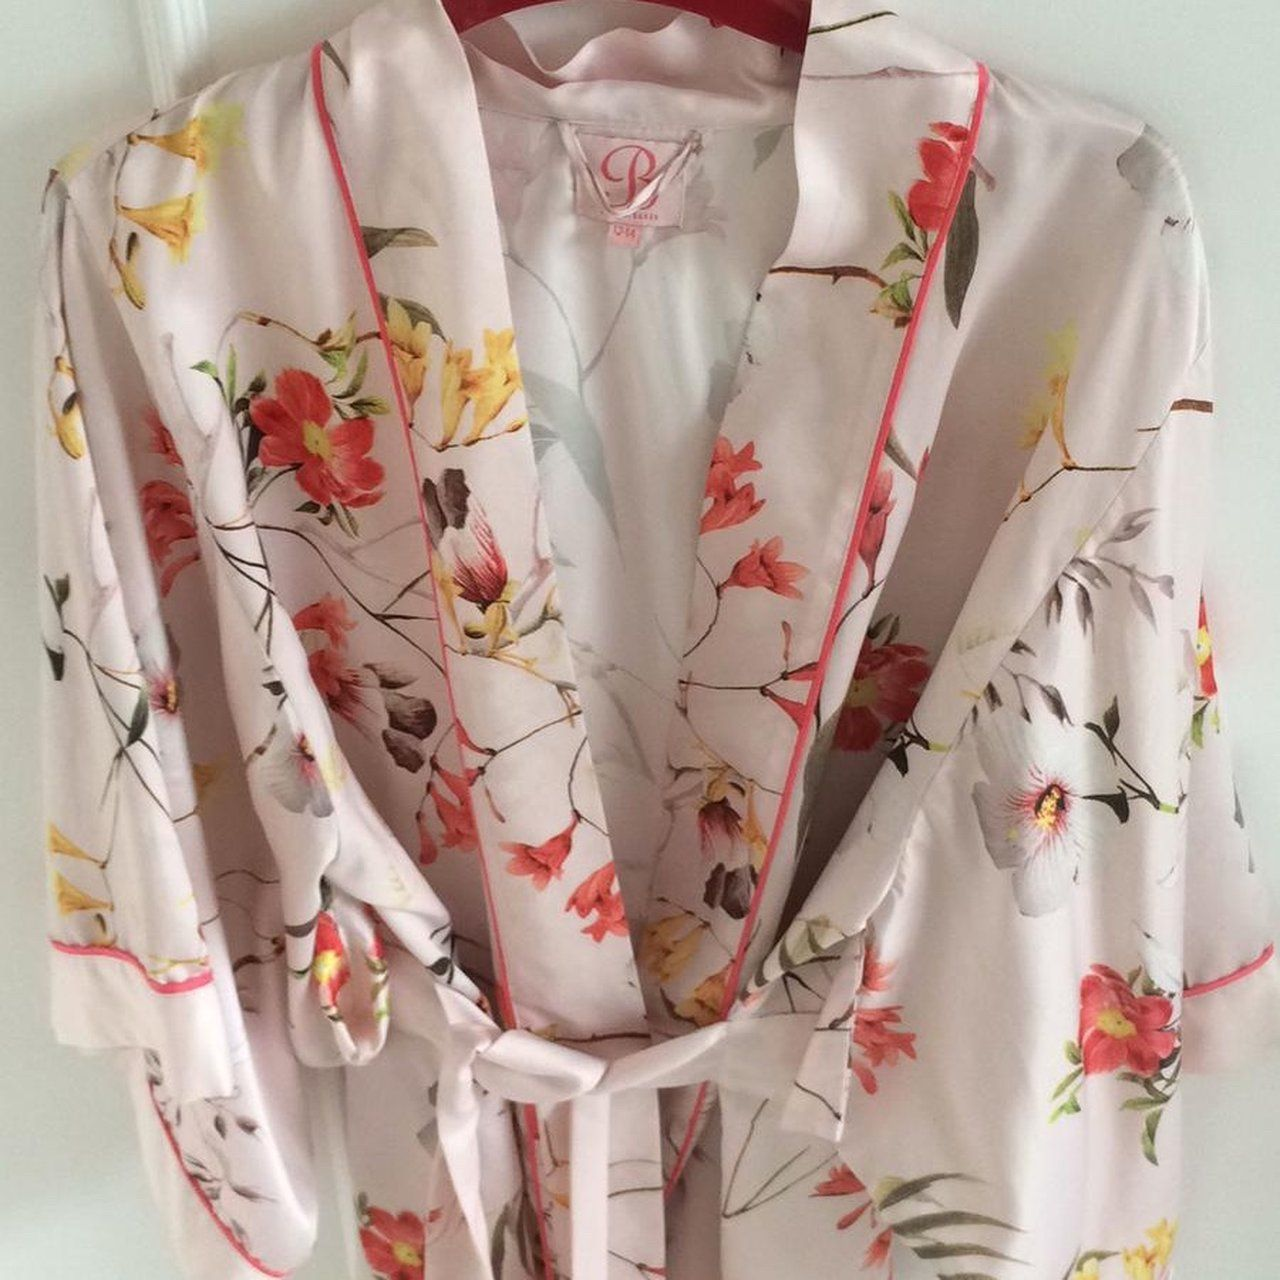 013e83af1d3 Ted Baker dressing gown for sale. Light and pretty. Size but - Depop